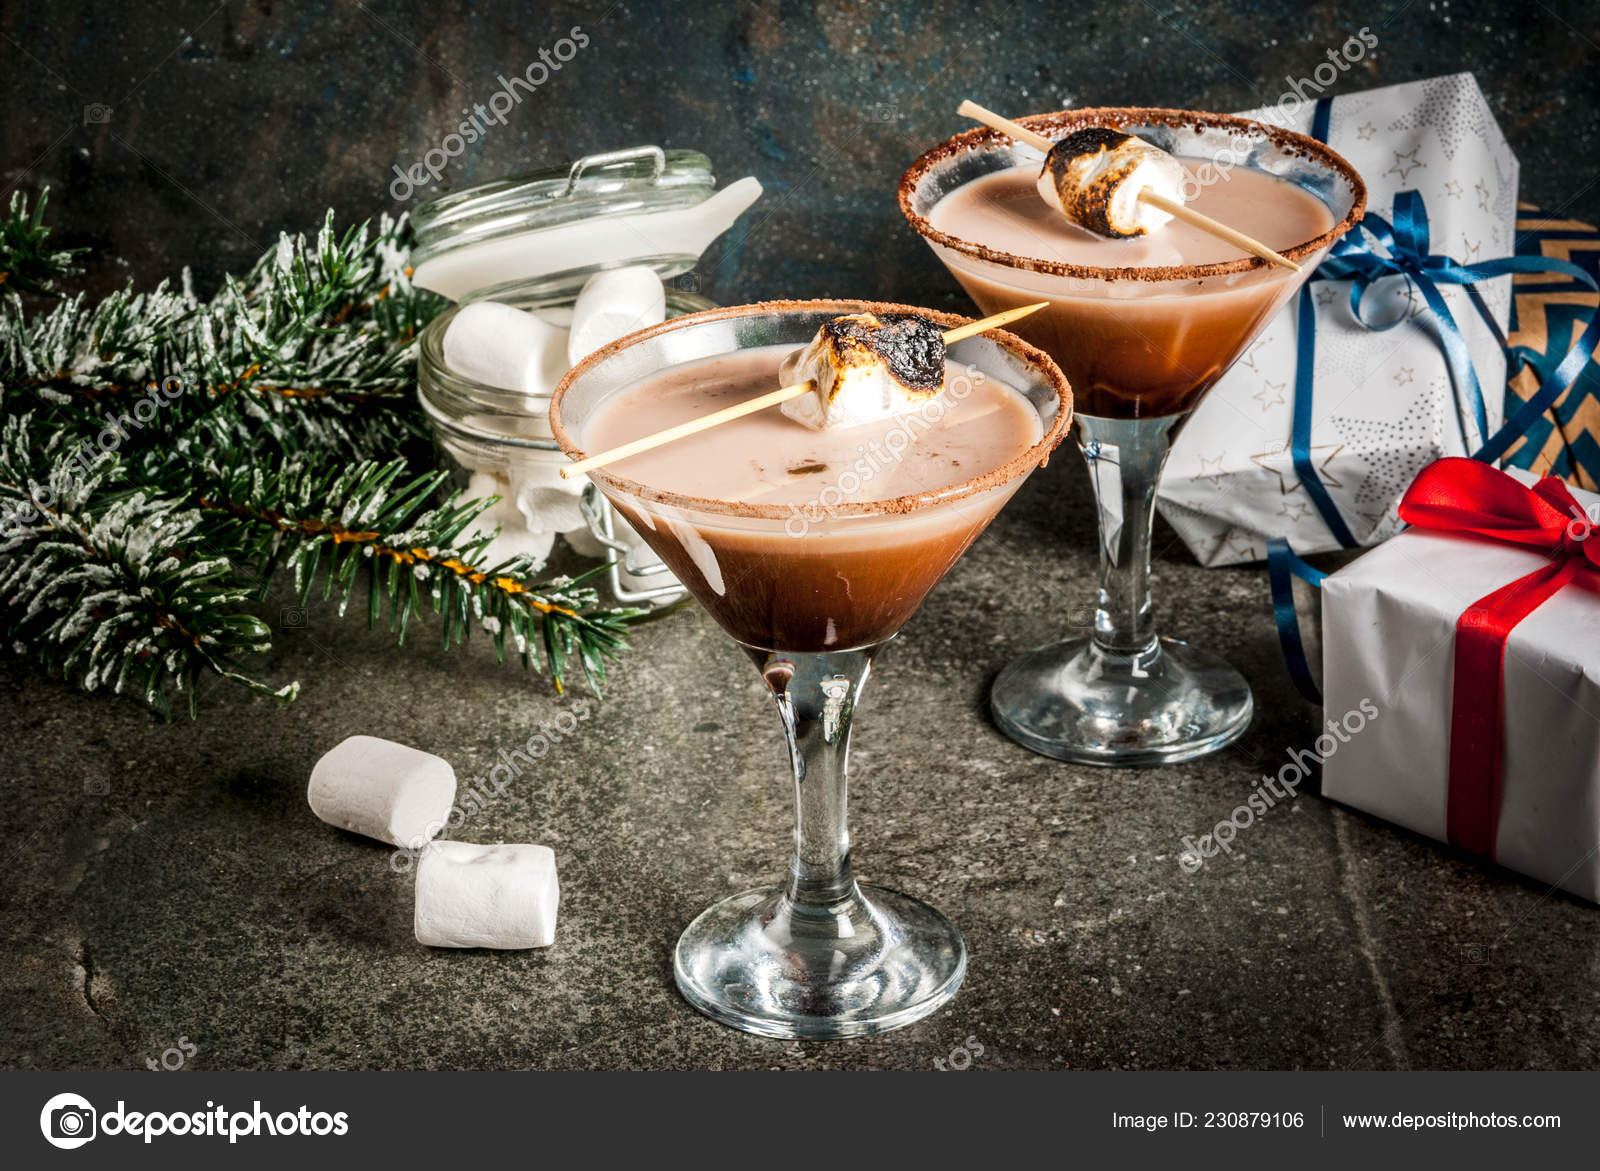 Idee We Nouvel An.Idee Boissons Noel Nouvel Grillees Smores Martini Fond Fonce